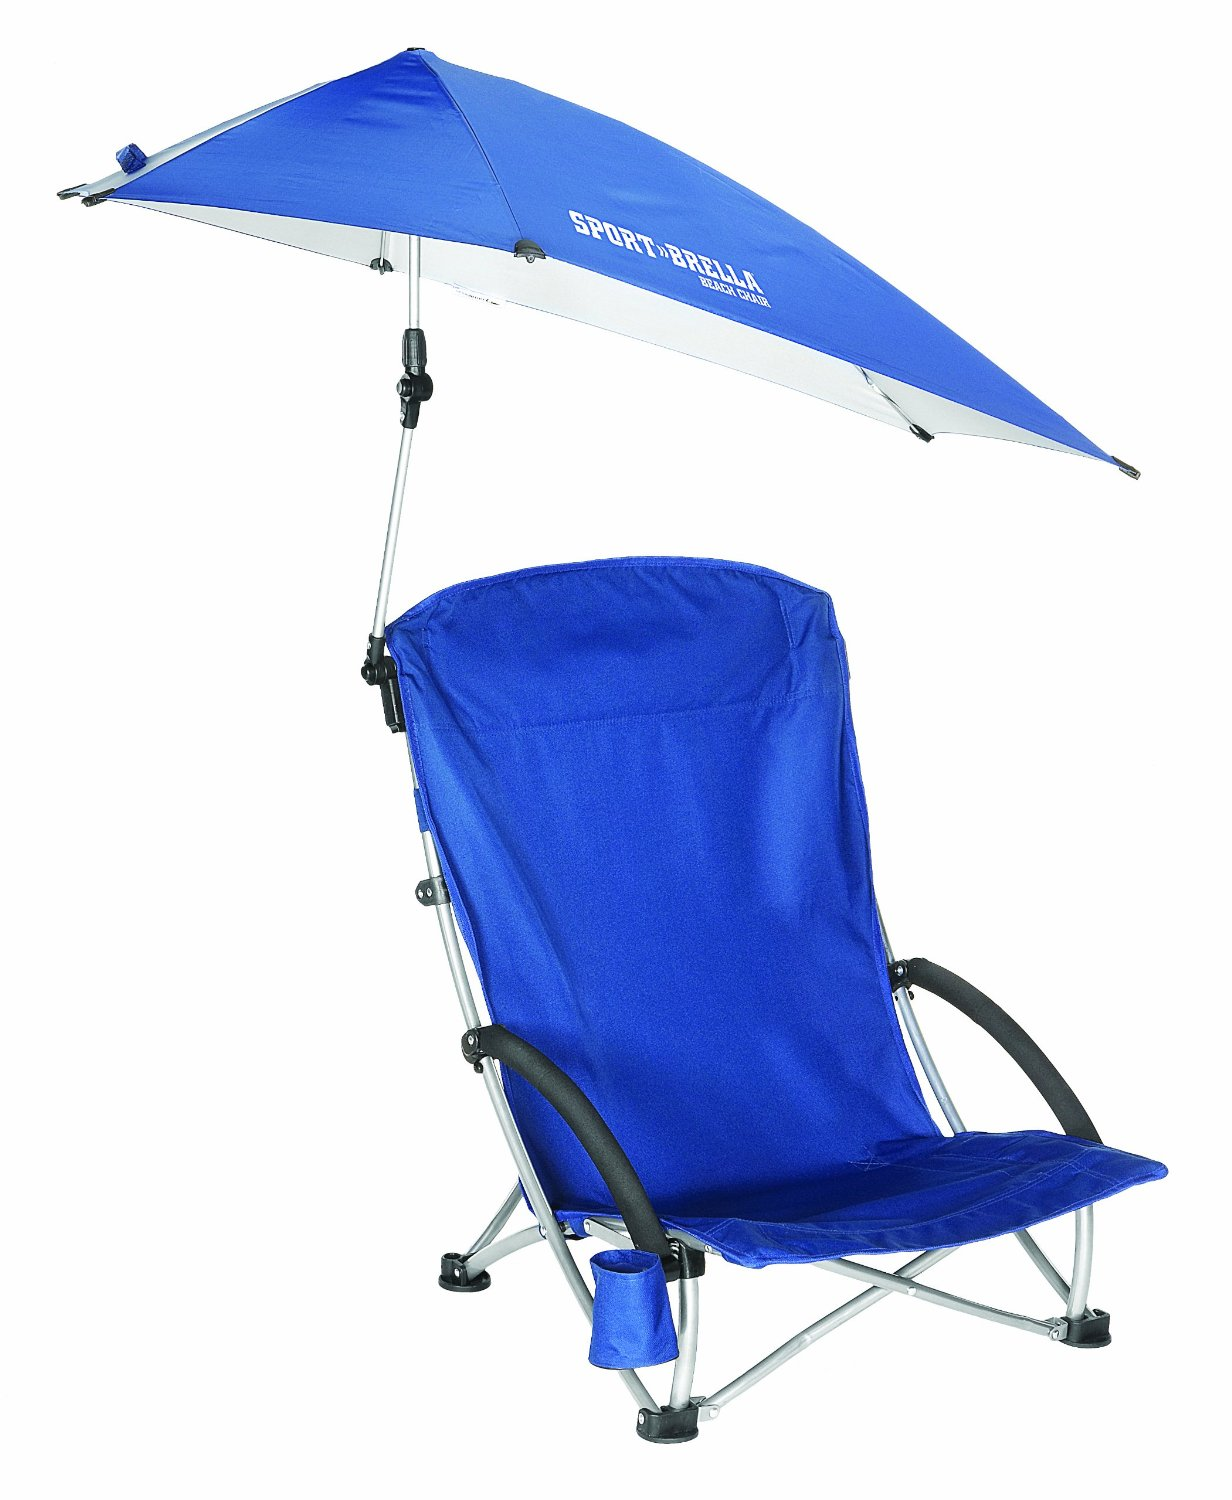 Beach Chairs With Umbrella How To Select The Best Beach Chair And Umbrella Combo Umbrellify